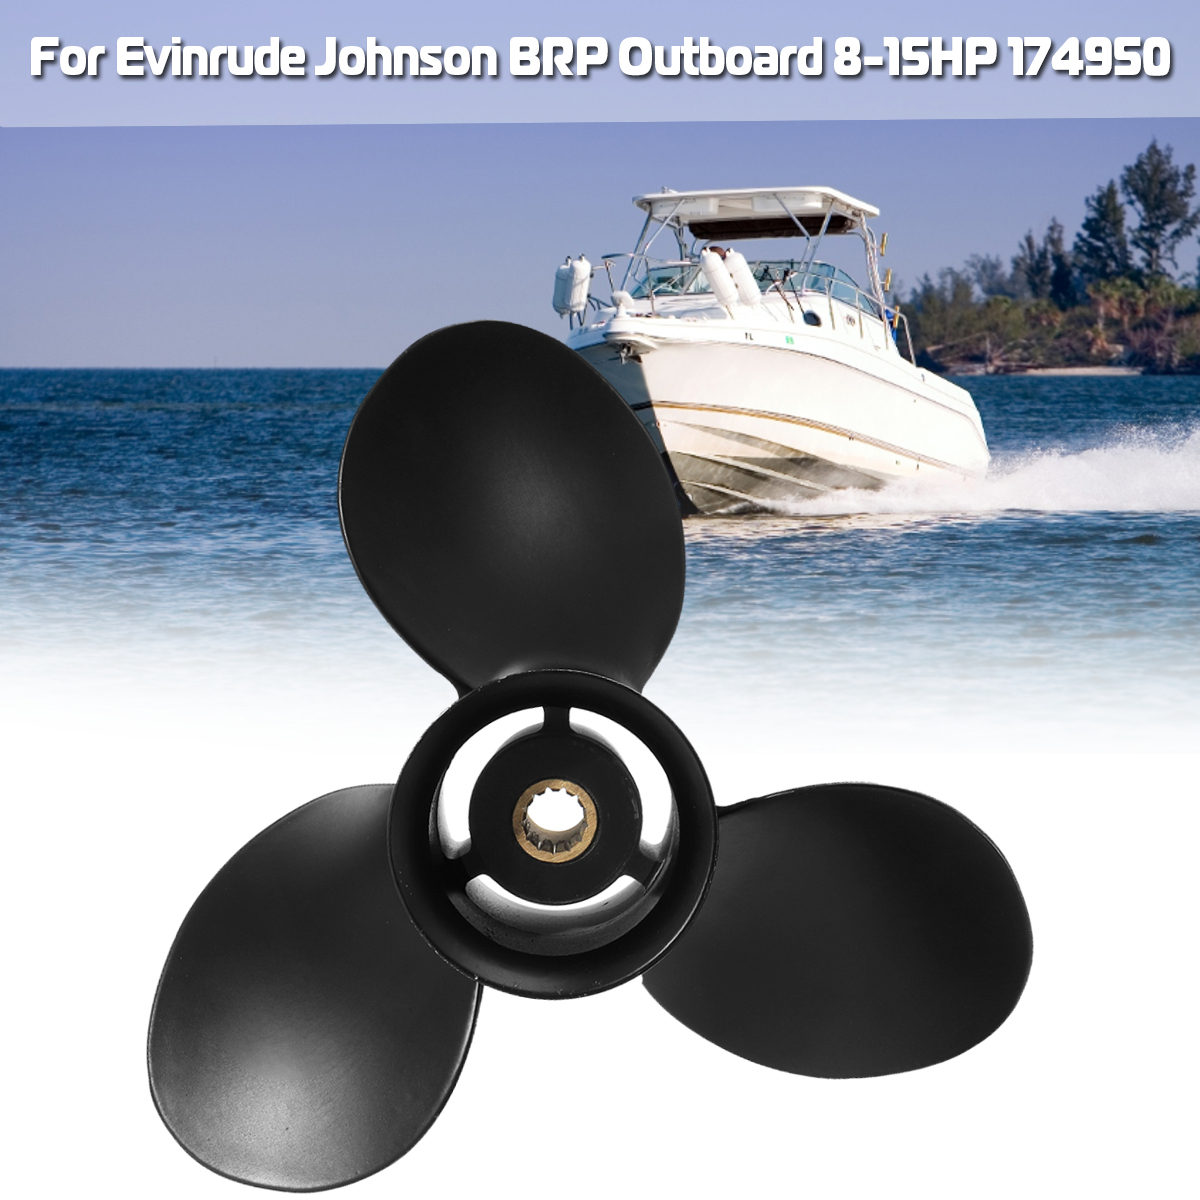 174950 778772 for evinrude johnson brp 8 15hp 9 1 4 x 10 [ 1200 x 1200 Pixel ]